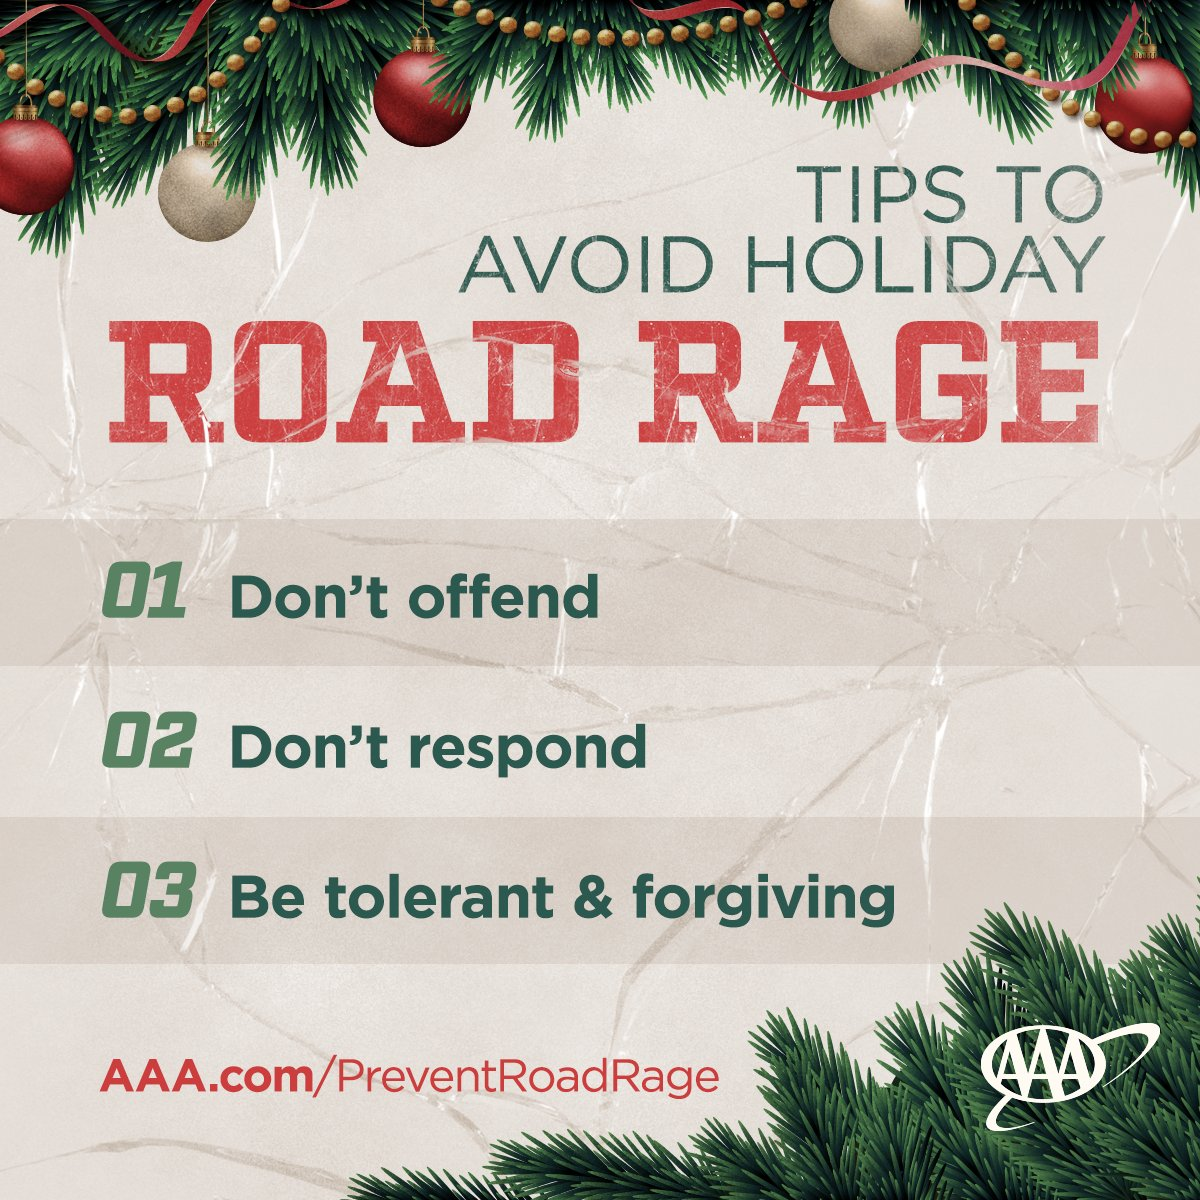 The holidays can be a stressful time. AAA offers these tips to help prevent road rage and assist drivers in reaching their destination safely. #KeepCalm #StayCool #PackYourPatience